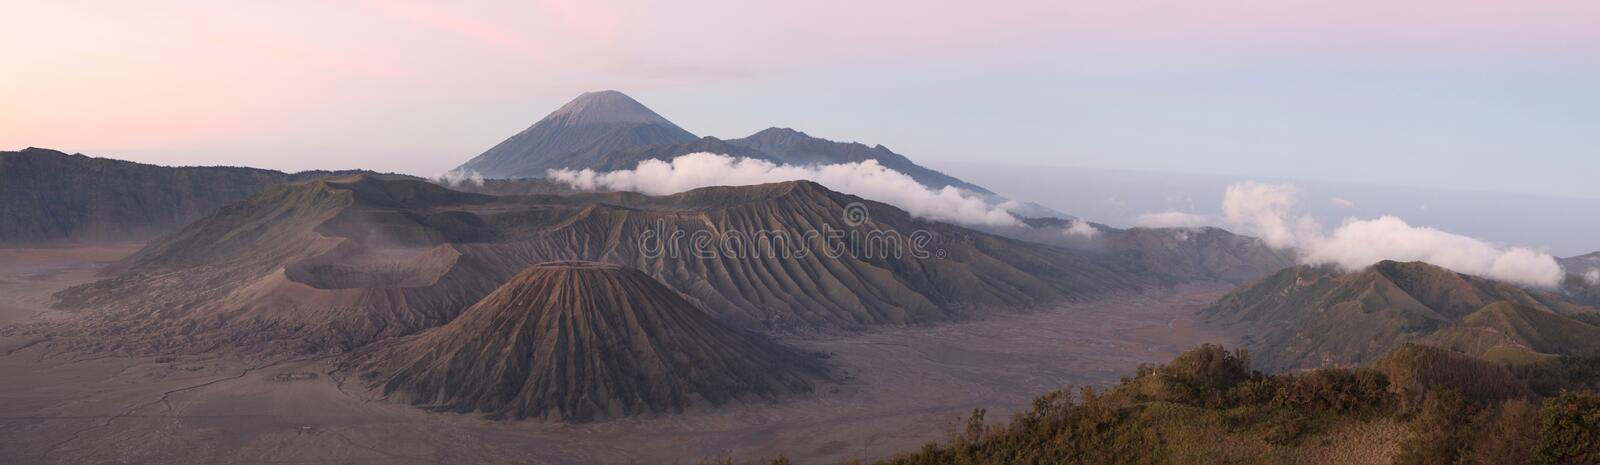 Sunrise over Mount Bromo and the Tengger Caldera in East Java, I. Sunrise over Mount Bromo (2,329 m) and the Tengger Caldera in East Java, Indonesia. Panorama stock image